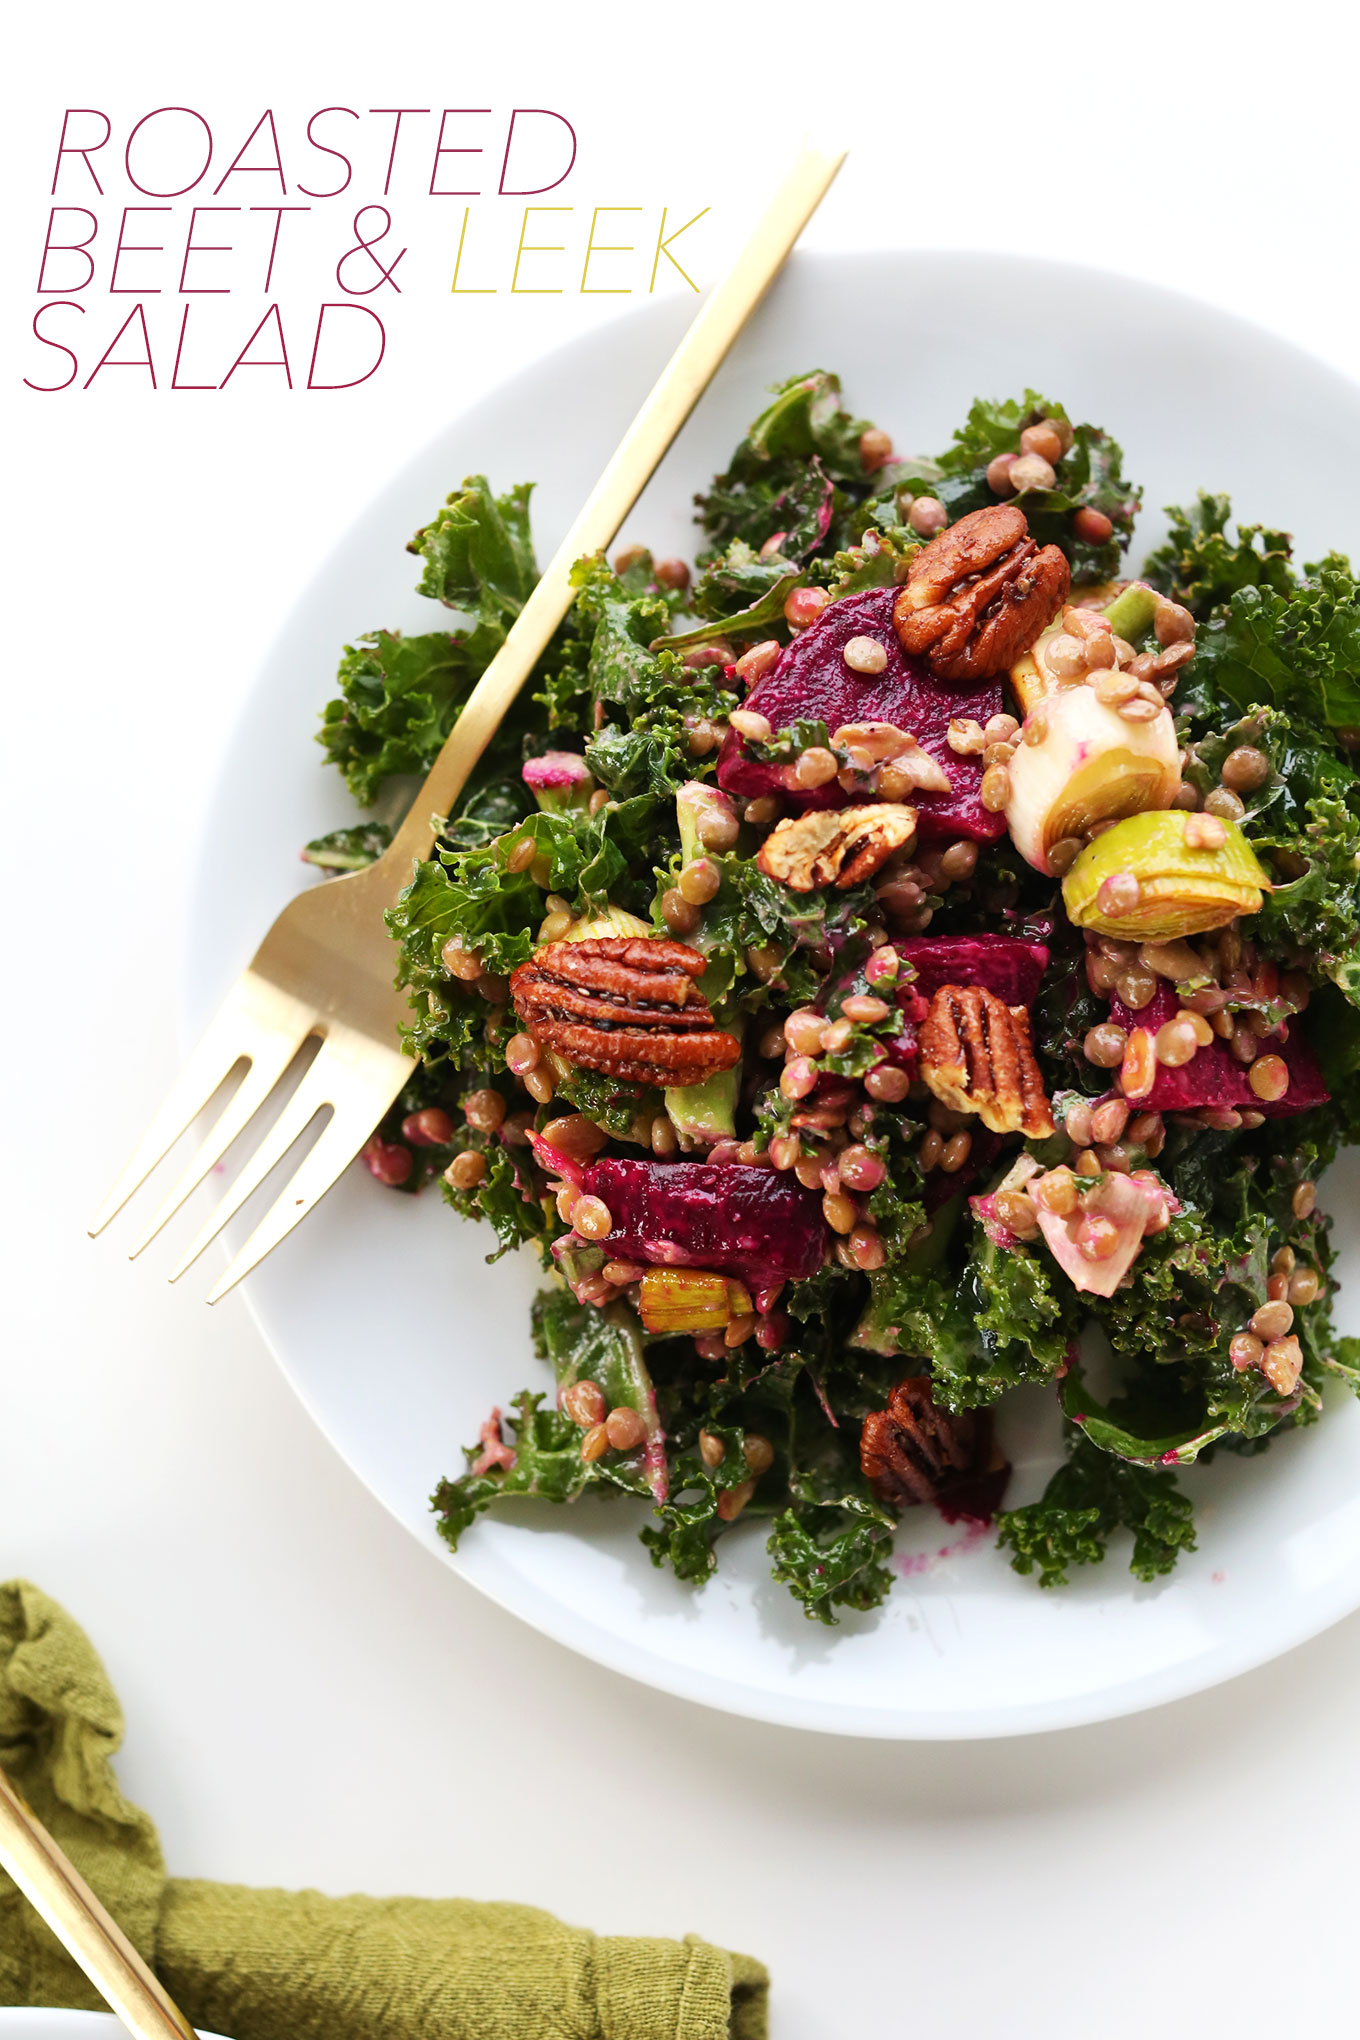 Big plate of our healthy winter kale salad recipe with lentils, beets, leeks, and pecans